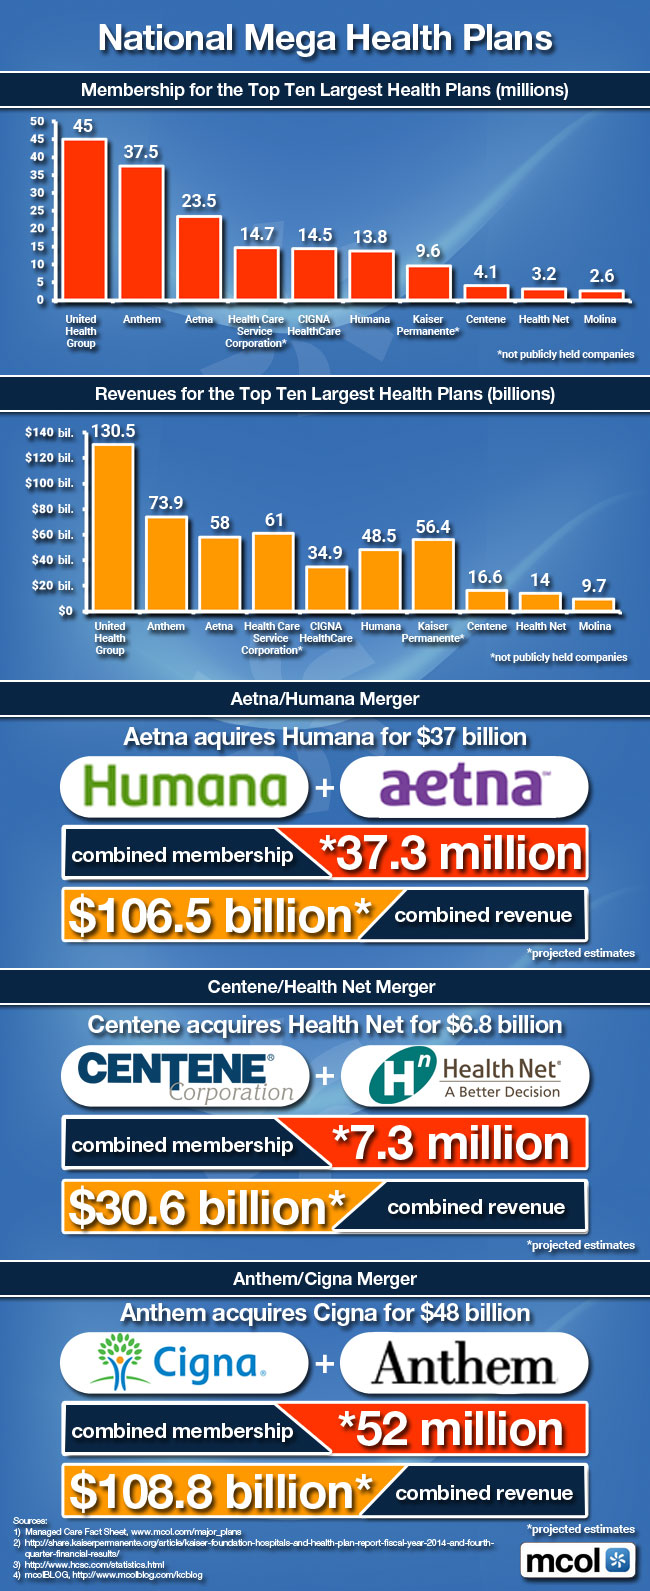 MCOL Mergers and Acquisitions of Health Plans Infographic